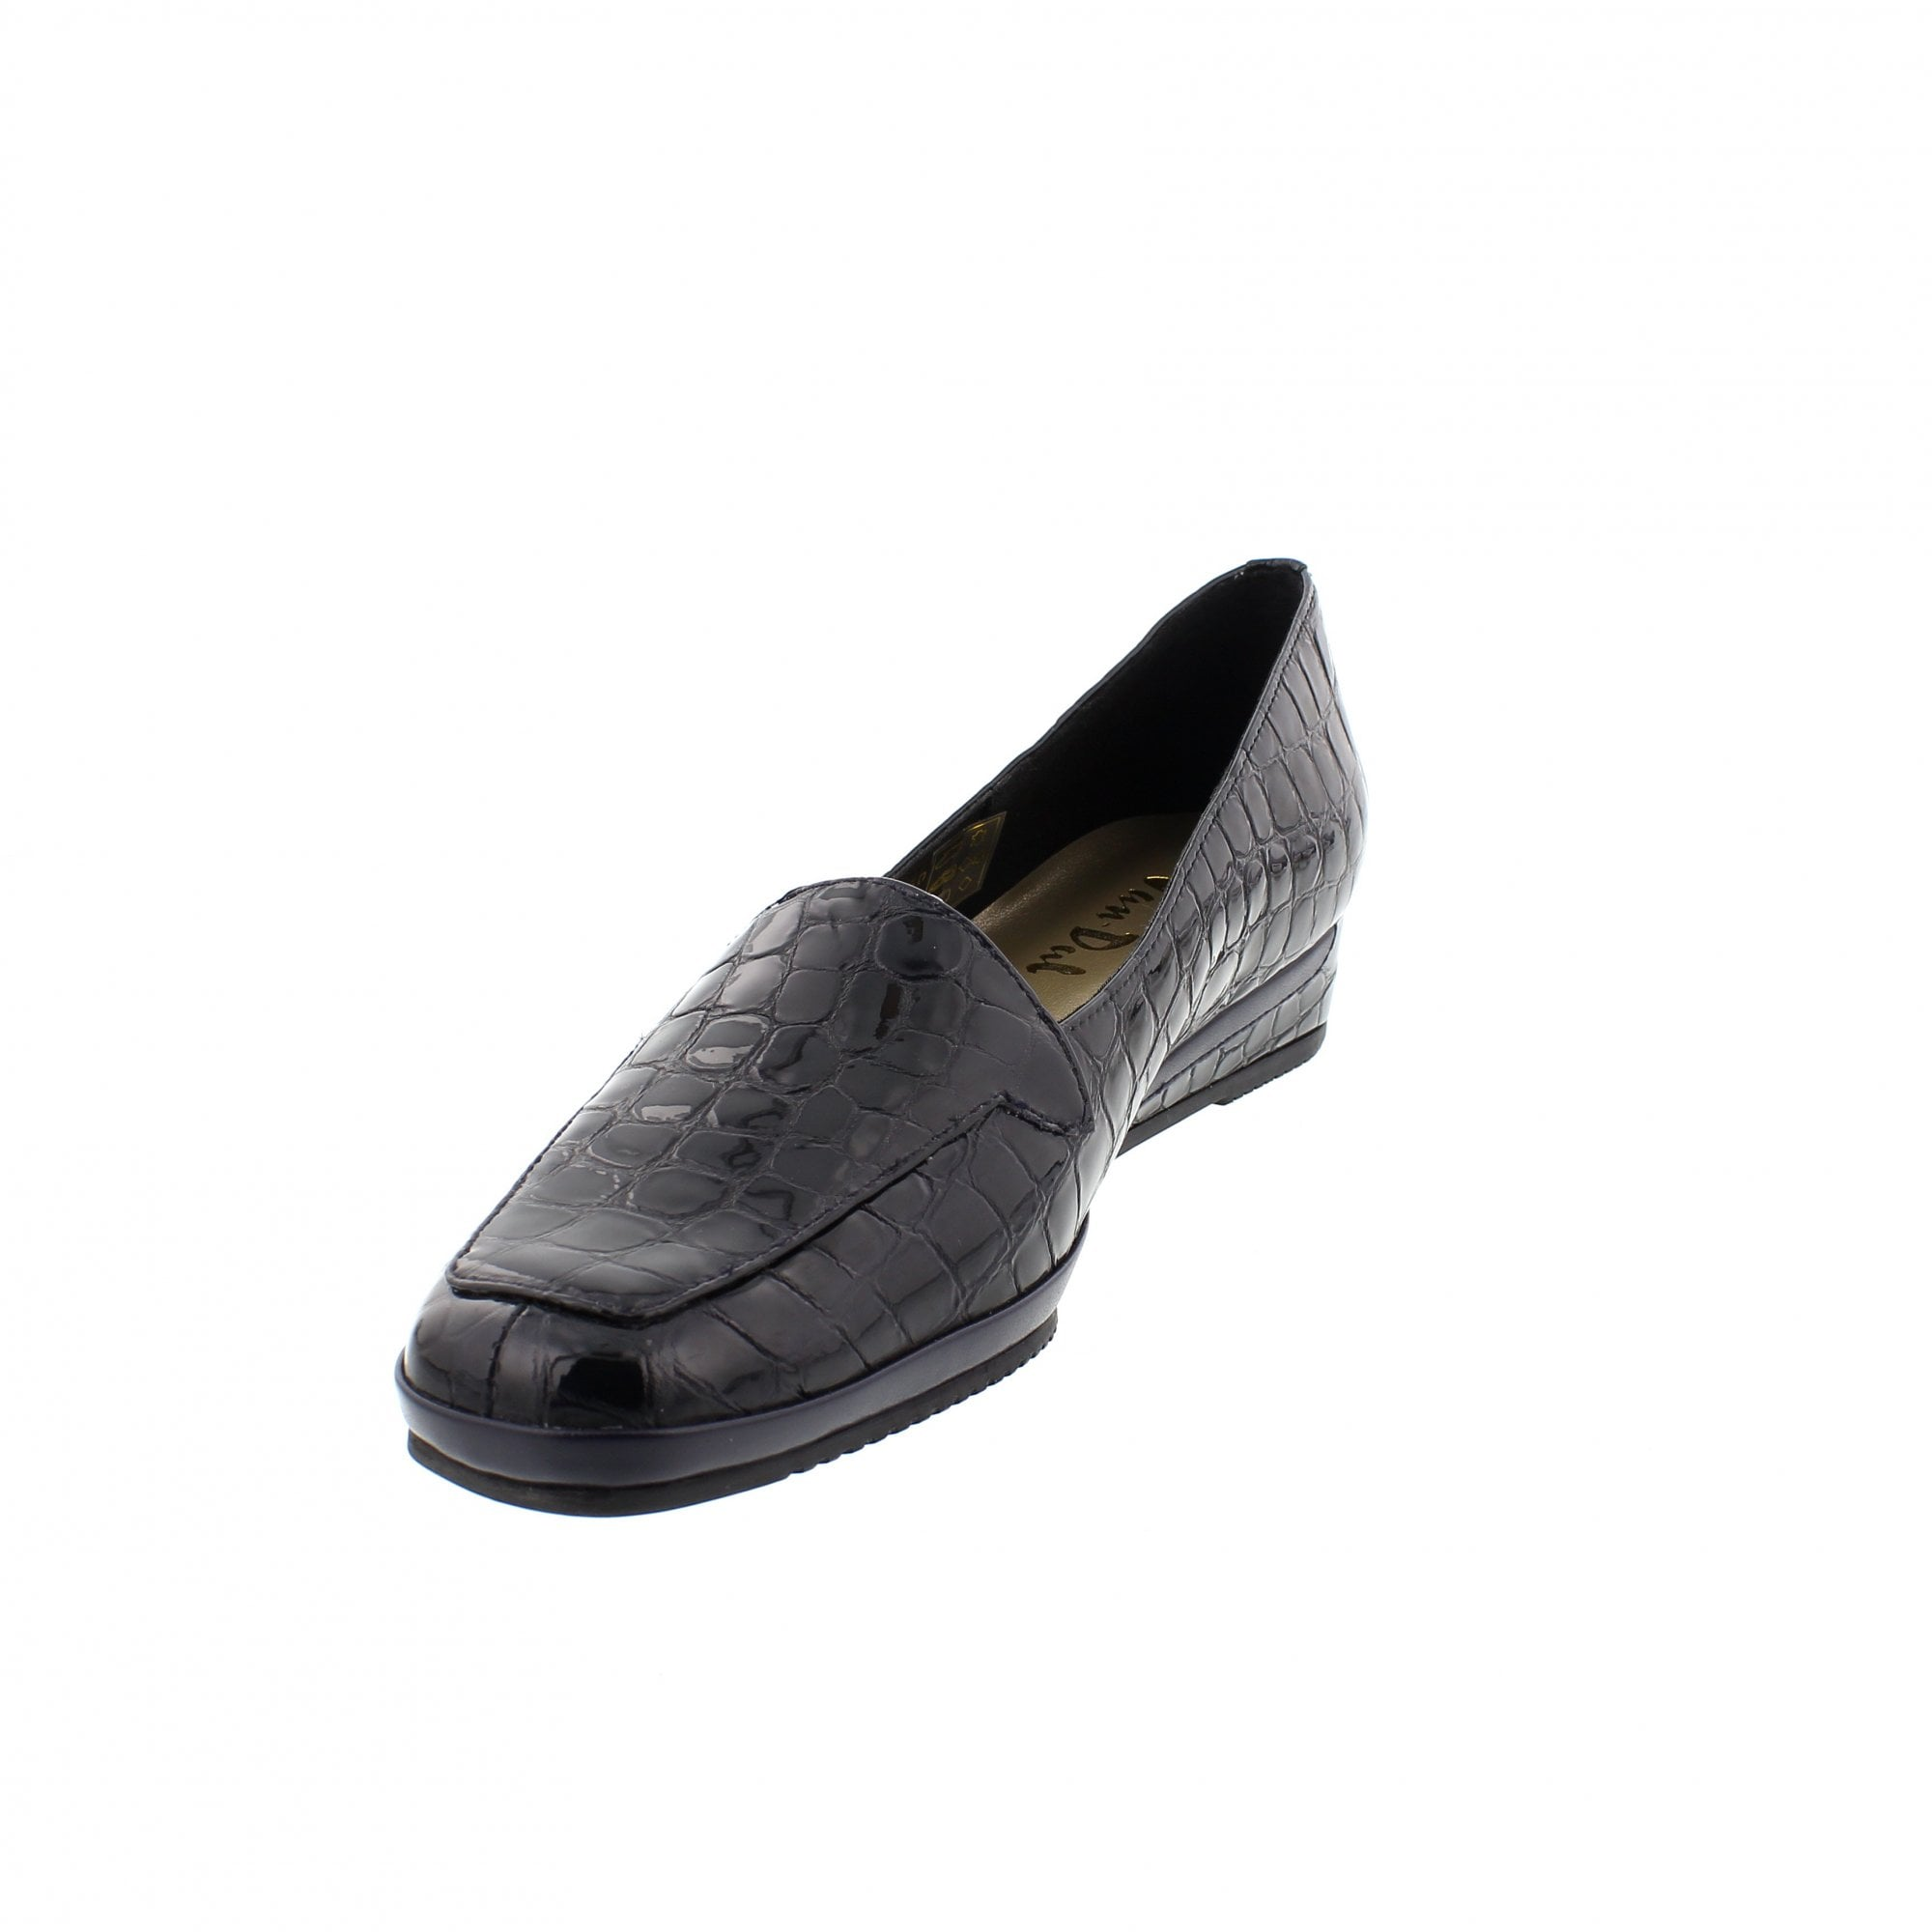 cfe80d1dfbaf0 Van Dal Verona III 1299440 Navy Patent Slip On Shoes | Rogerson Shoes